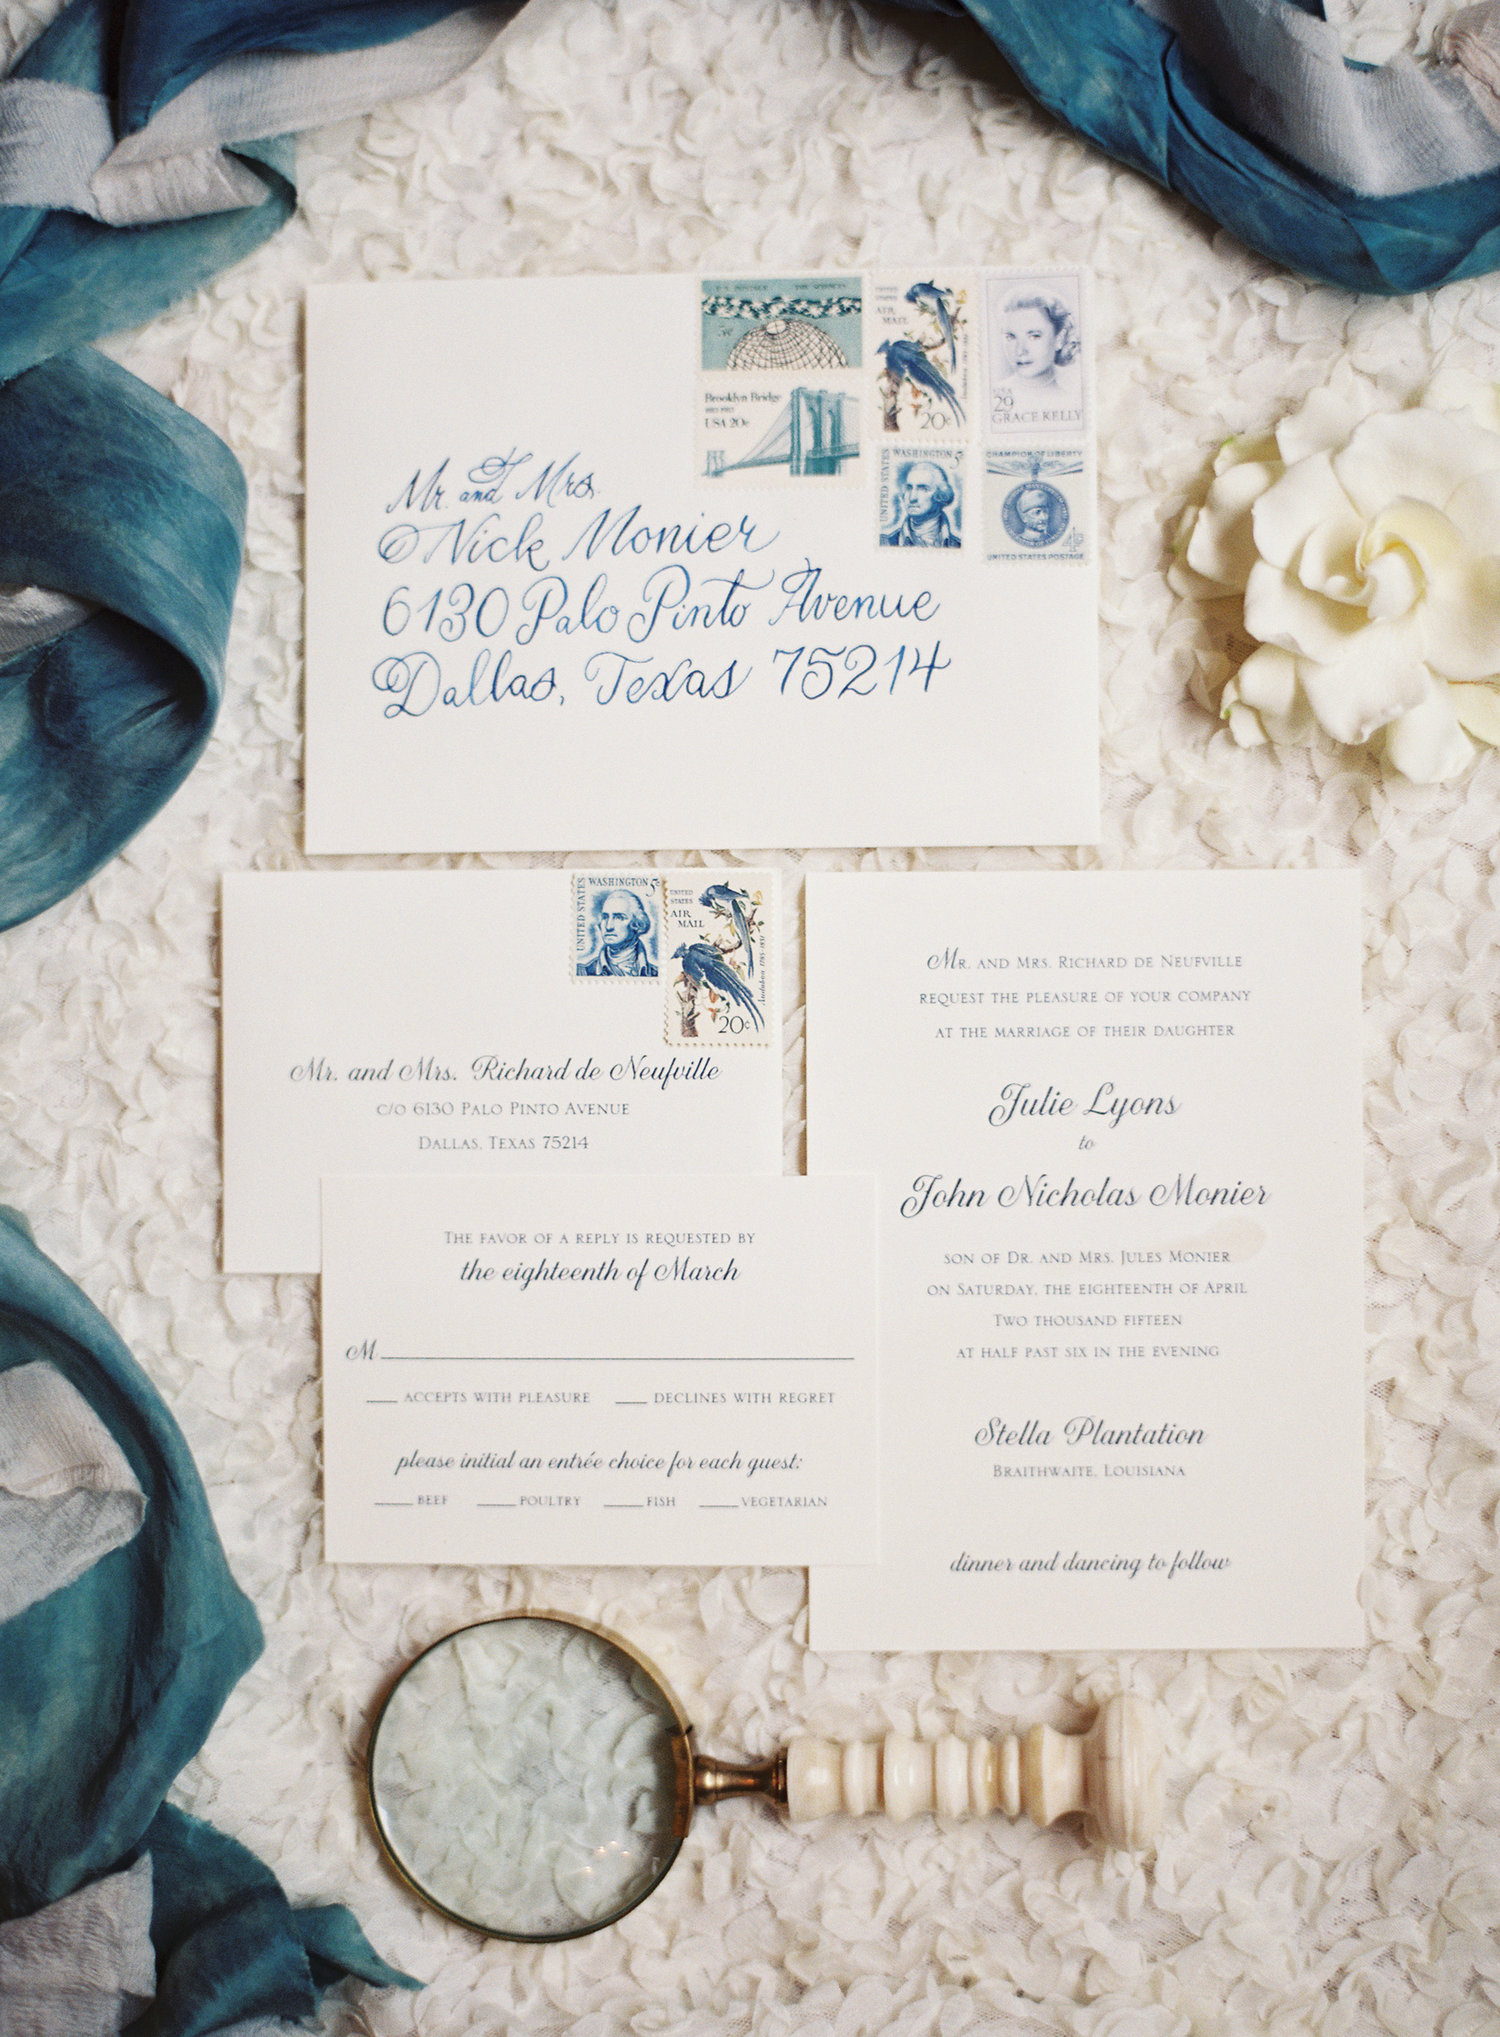 Ivory wedding invitation suite with blue calligraphy and a blue stamp story